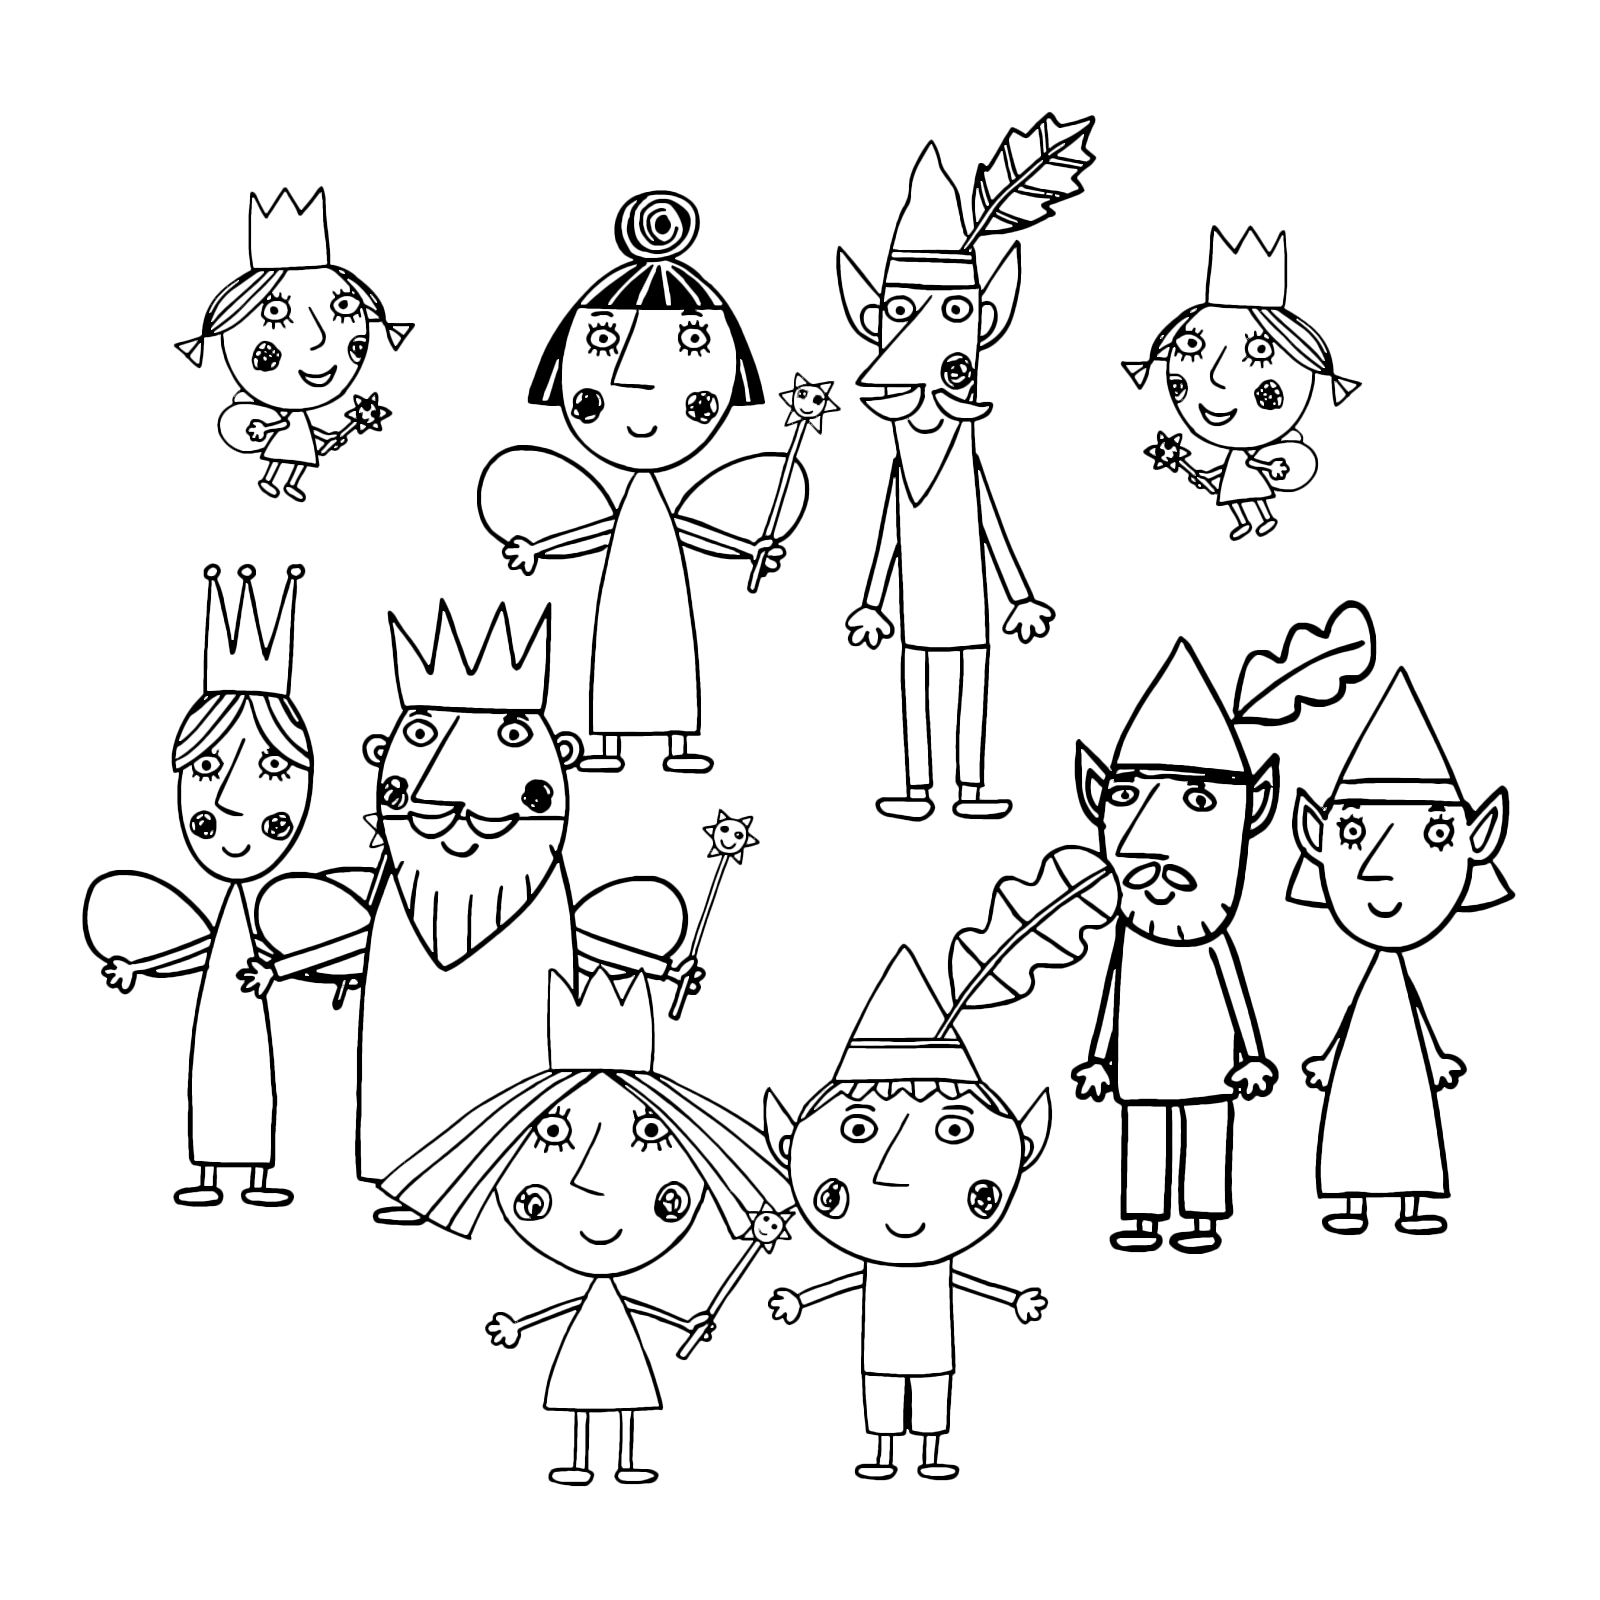 ben and holly coloring pages pdf ben holly39s little kingdom the king and queen thistle holly and ben pdf pages coloring